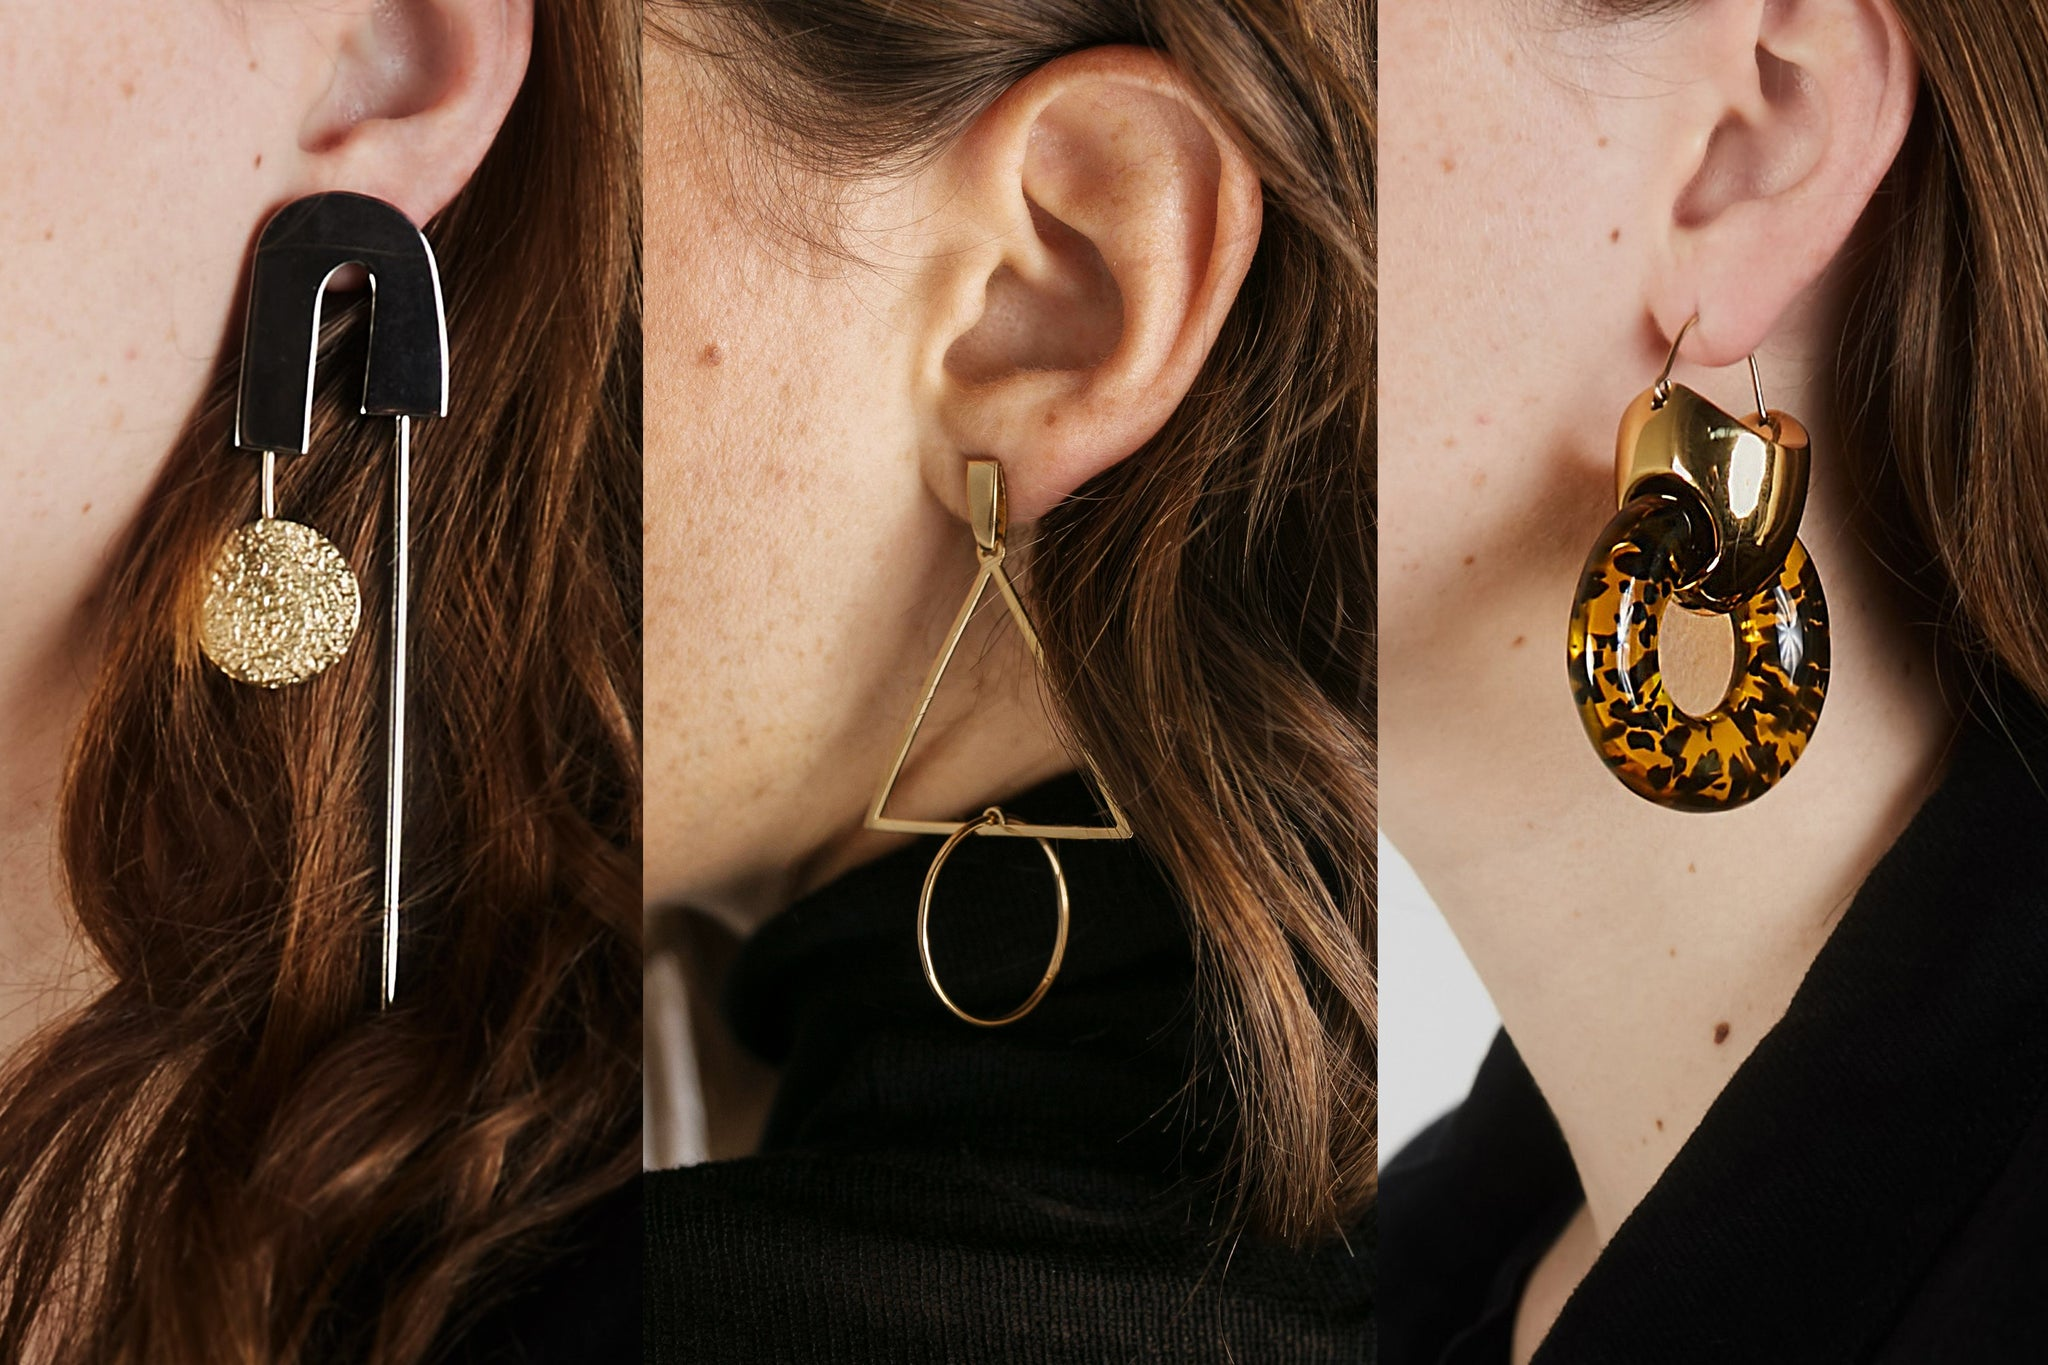 Ellery earrings, Rachel Comey Earrings, Holly Ryan earrings, jewellery trends 2017 maximalist